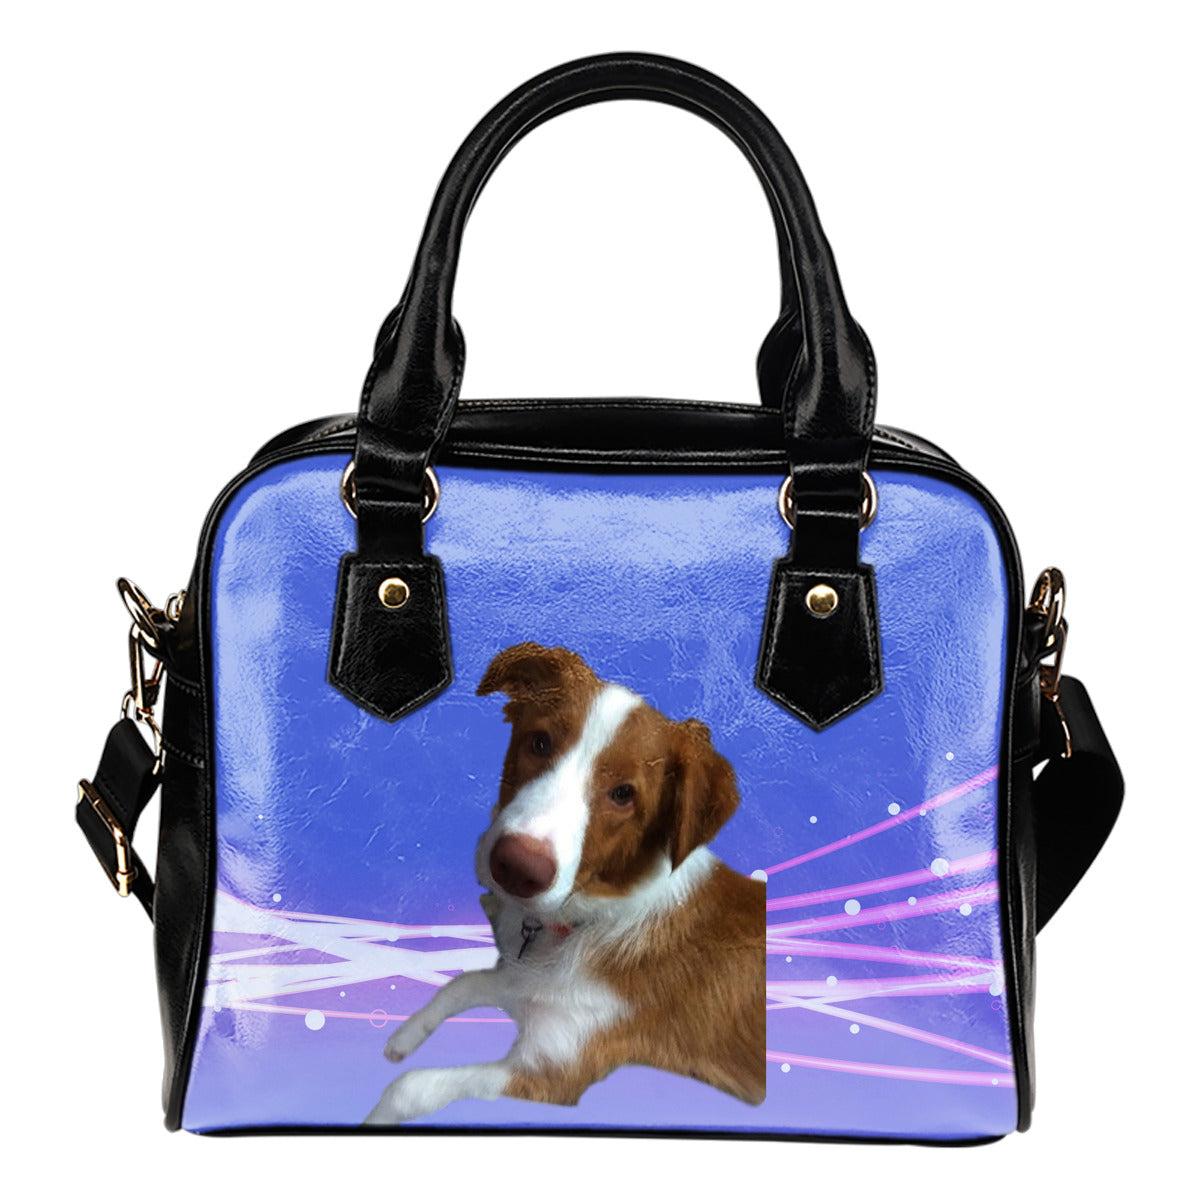 Border Collie Shoulder Bag - Hudson